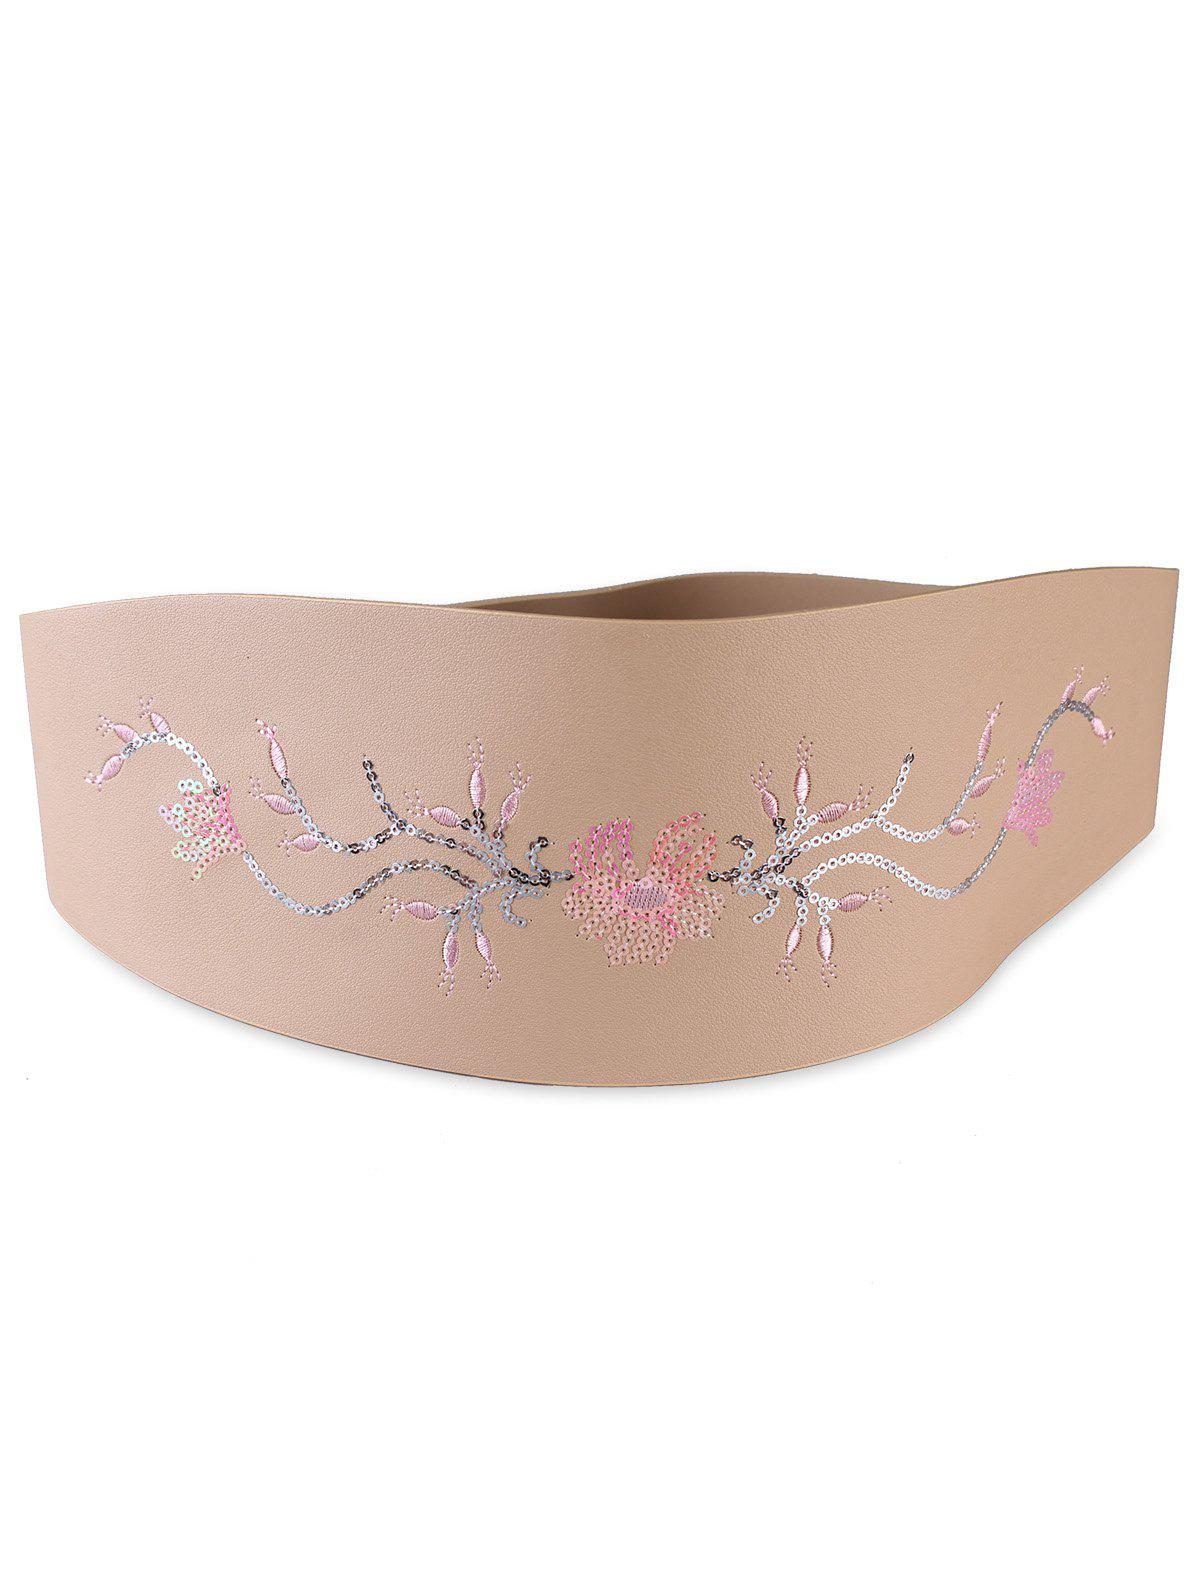 Retro Floral Sequins Decorative High Waist Belt - APRICOT